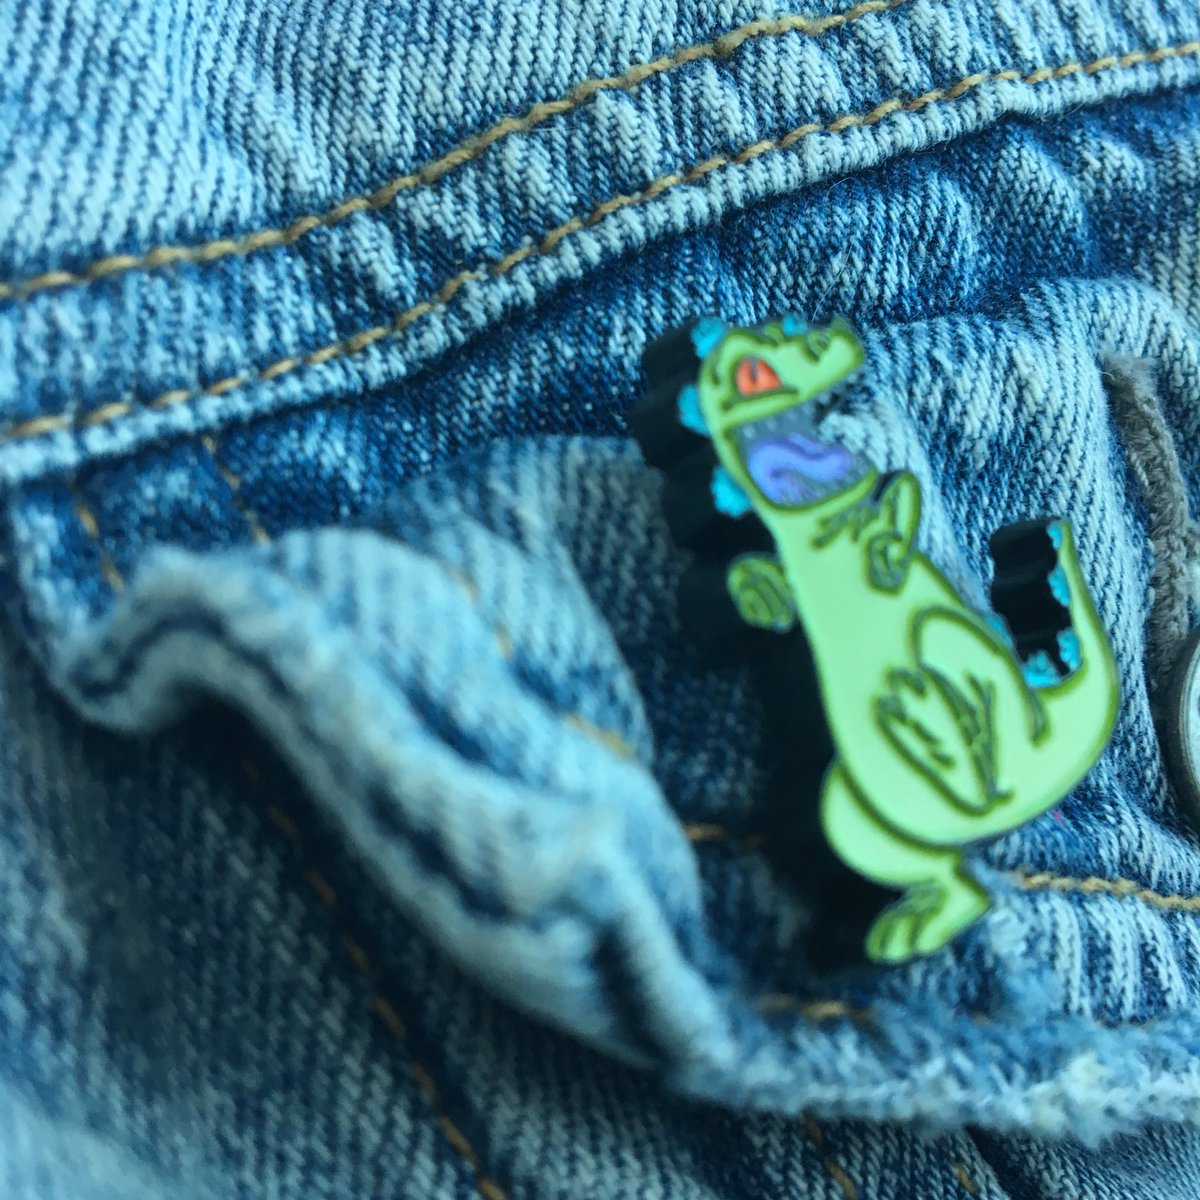 I will share that I went to the comic book store and got this rugrats pin.